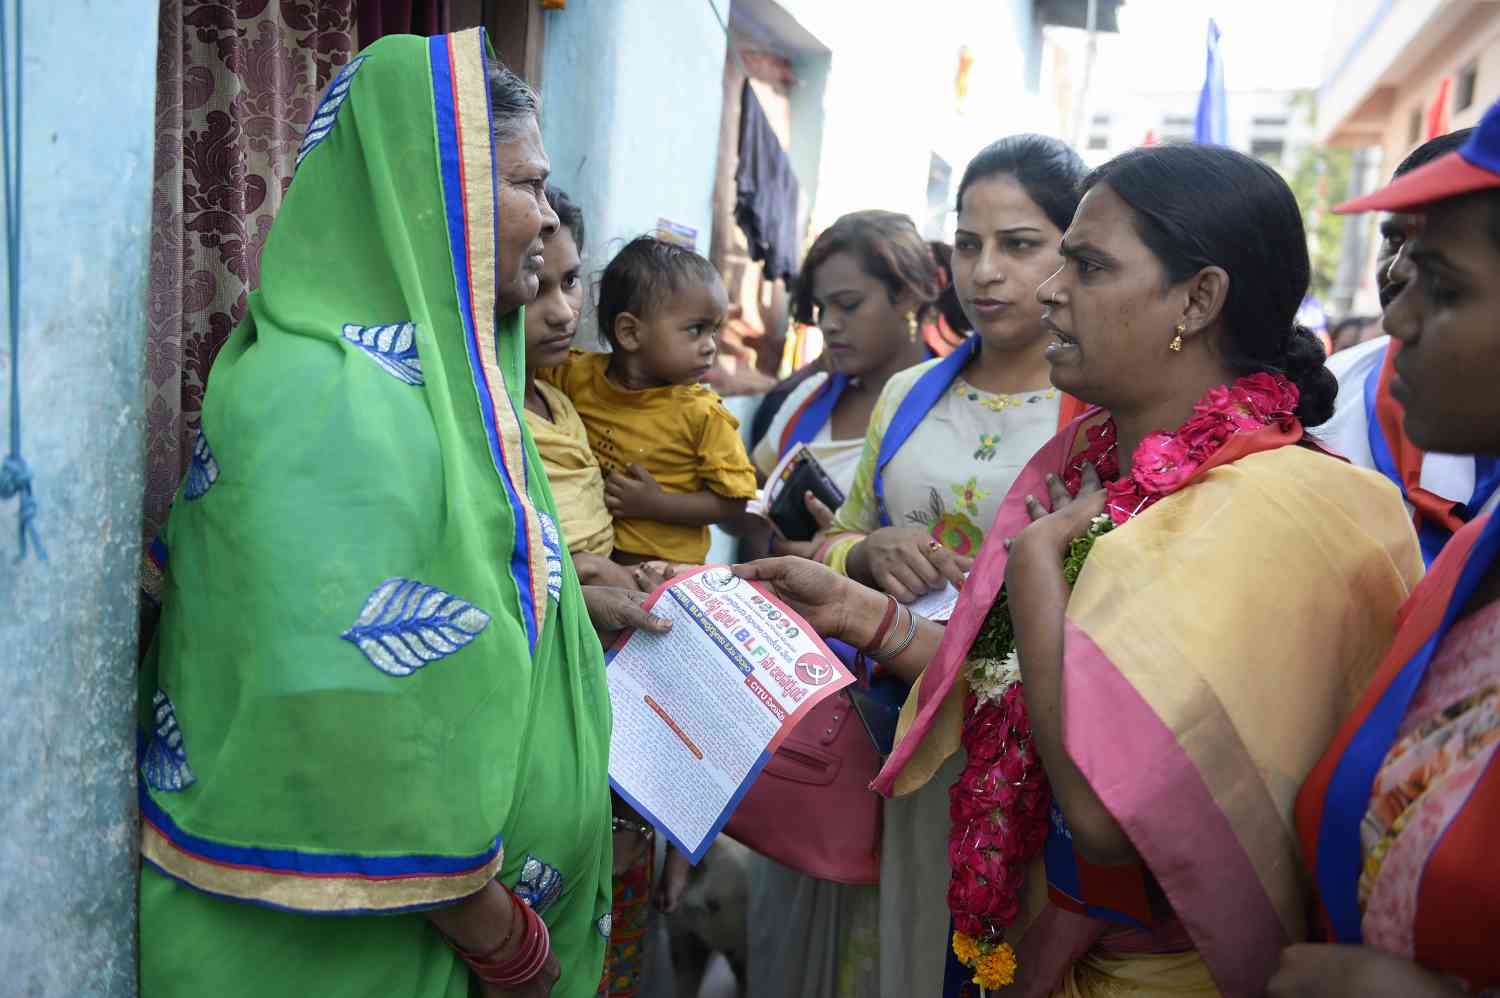 Chandramukhi Muvvala, 32, talks with voters as she campaigns in Hyderabad's Goshamahal constituency on November 26. She belongs to the Bahujan Left Front. (Photo credit: Noah Seelam/AFP).